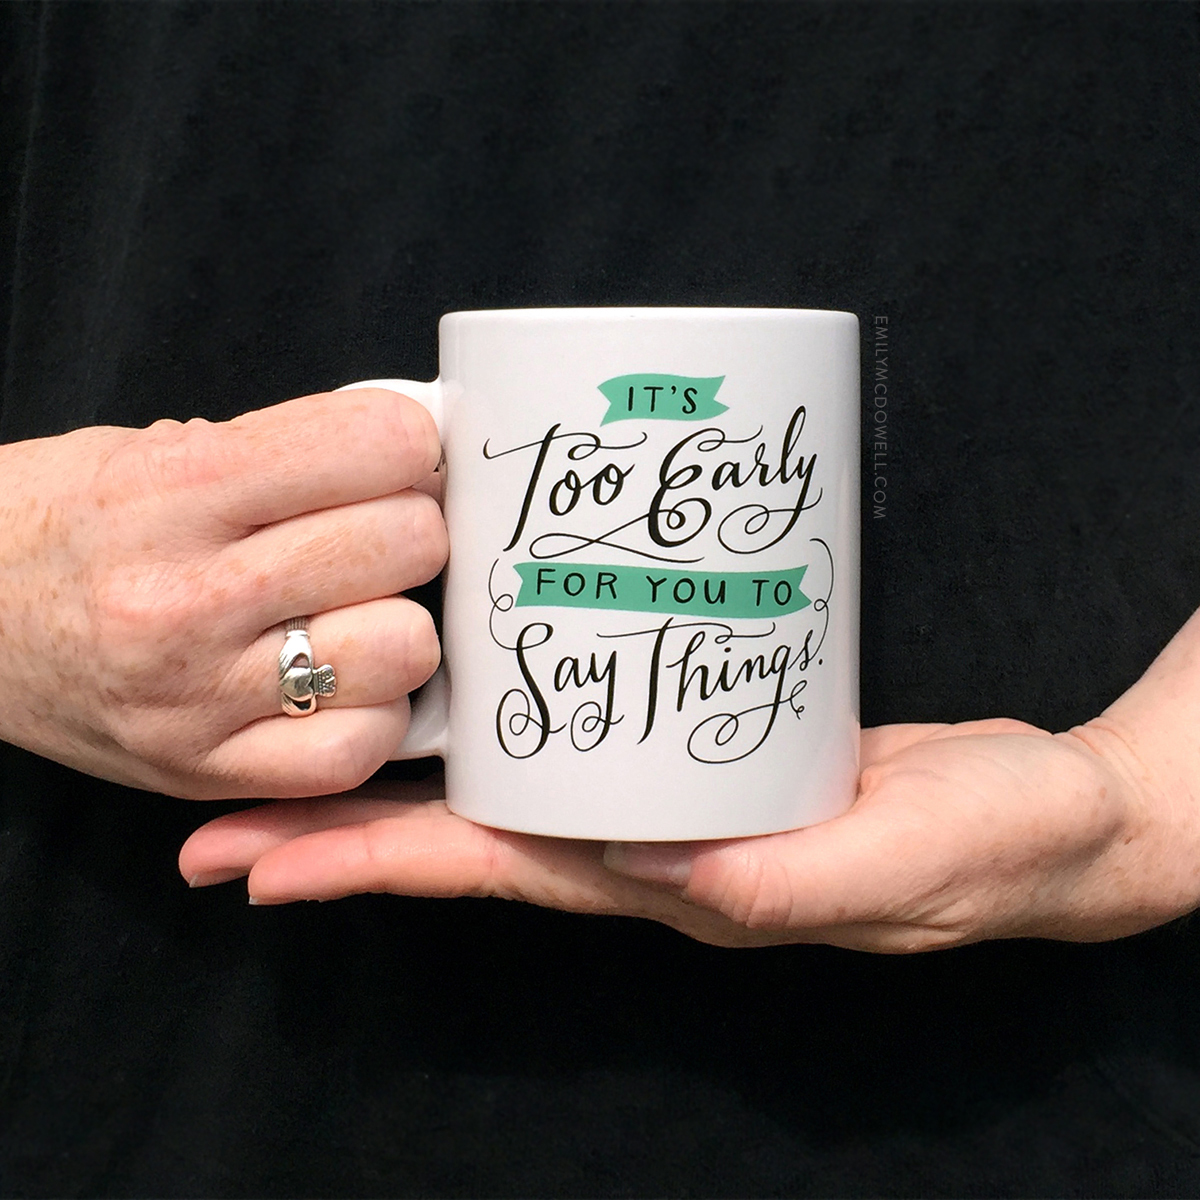 Stylish Coffee MugsIt's hard not to love one of these adorable mugs from designer Emily McDowell's collection. For the coffee lover in your life, look no further than a mug with a personal saying that seems to describe exactly who you're buying for. We  especially love this one shown here.